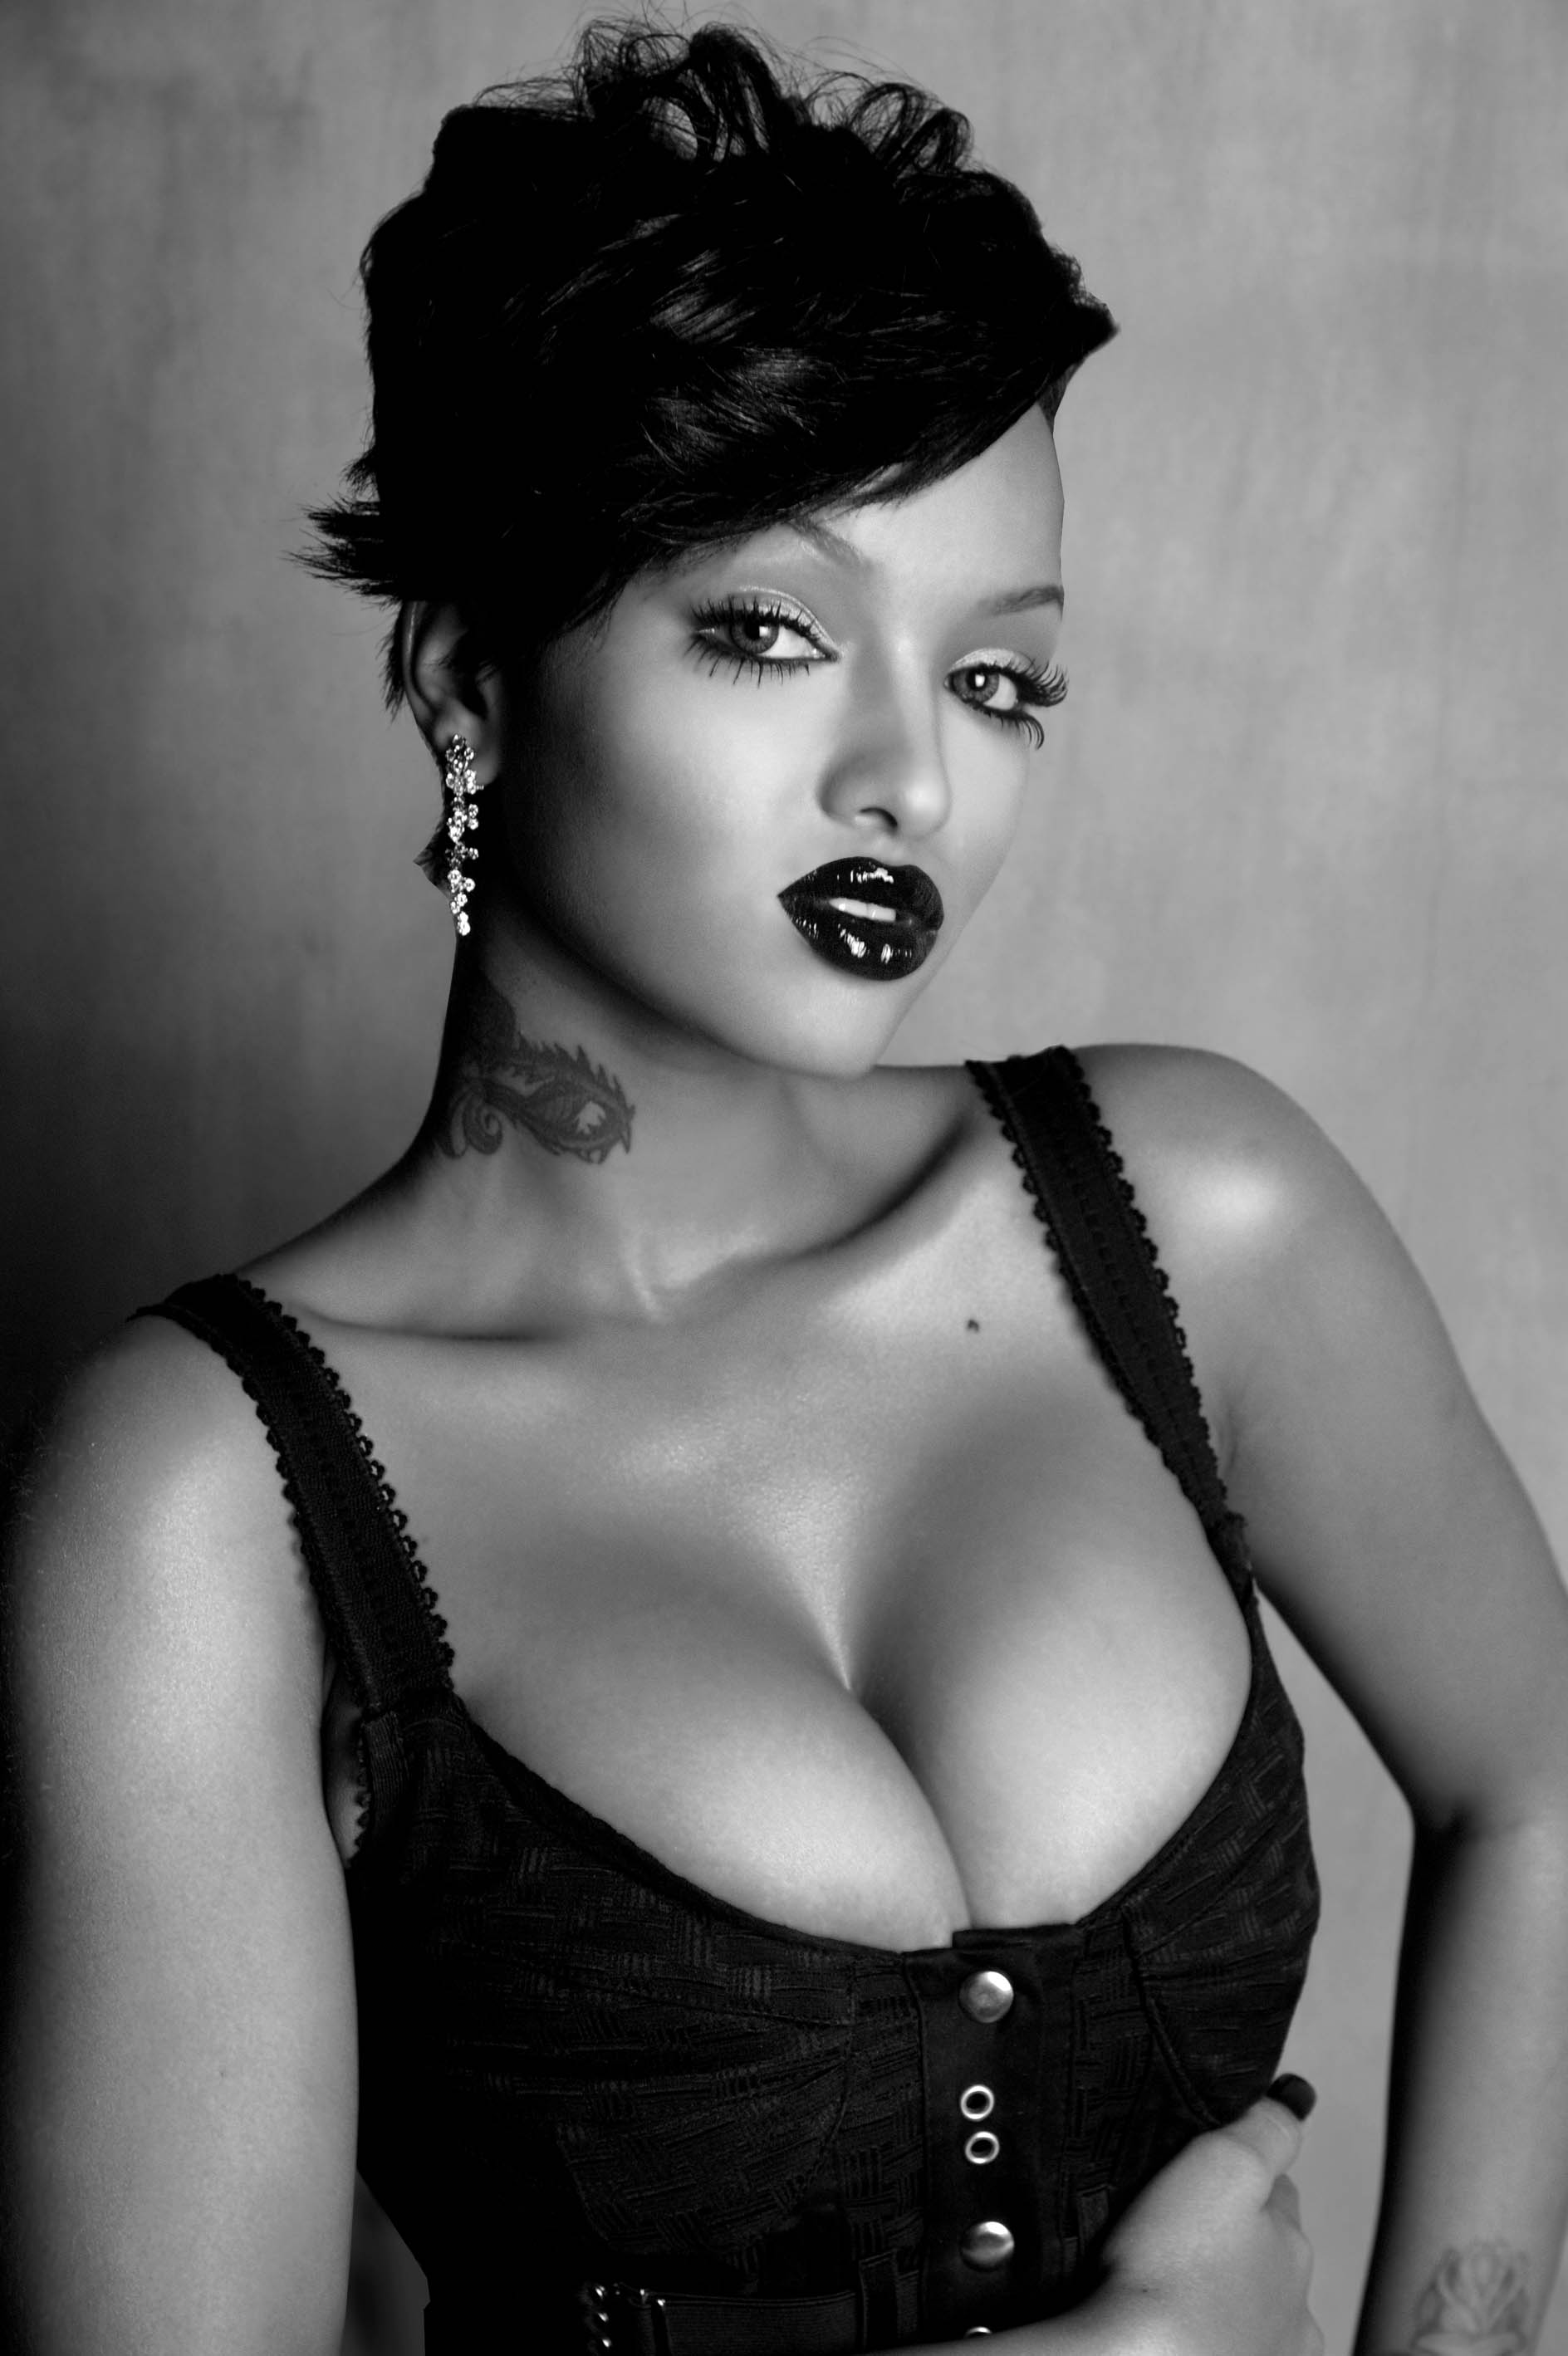 Lola Monroe S Camp Responds To Media Take Out